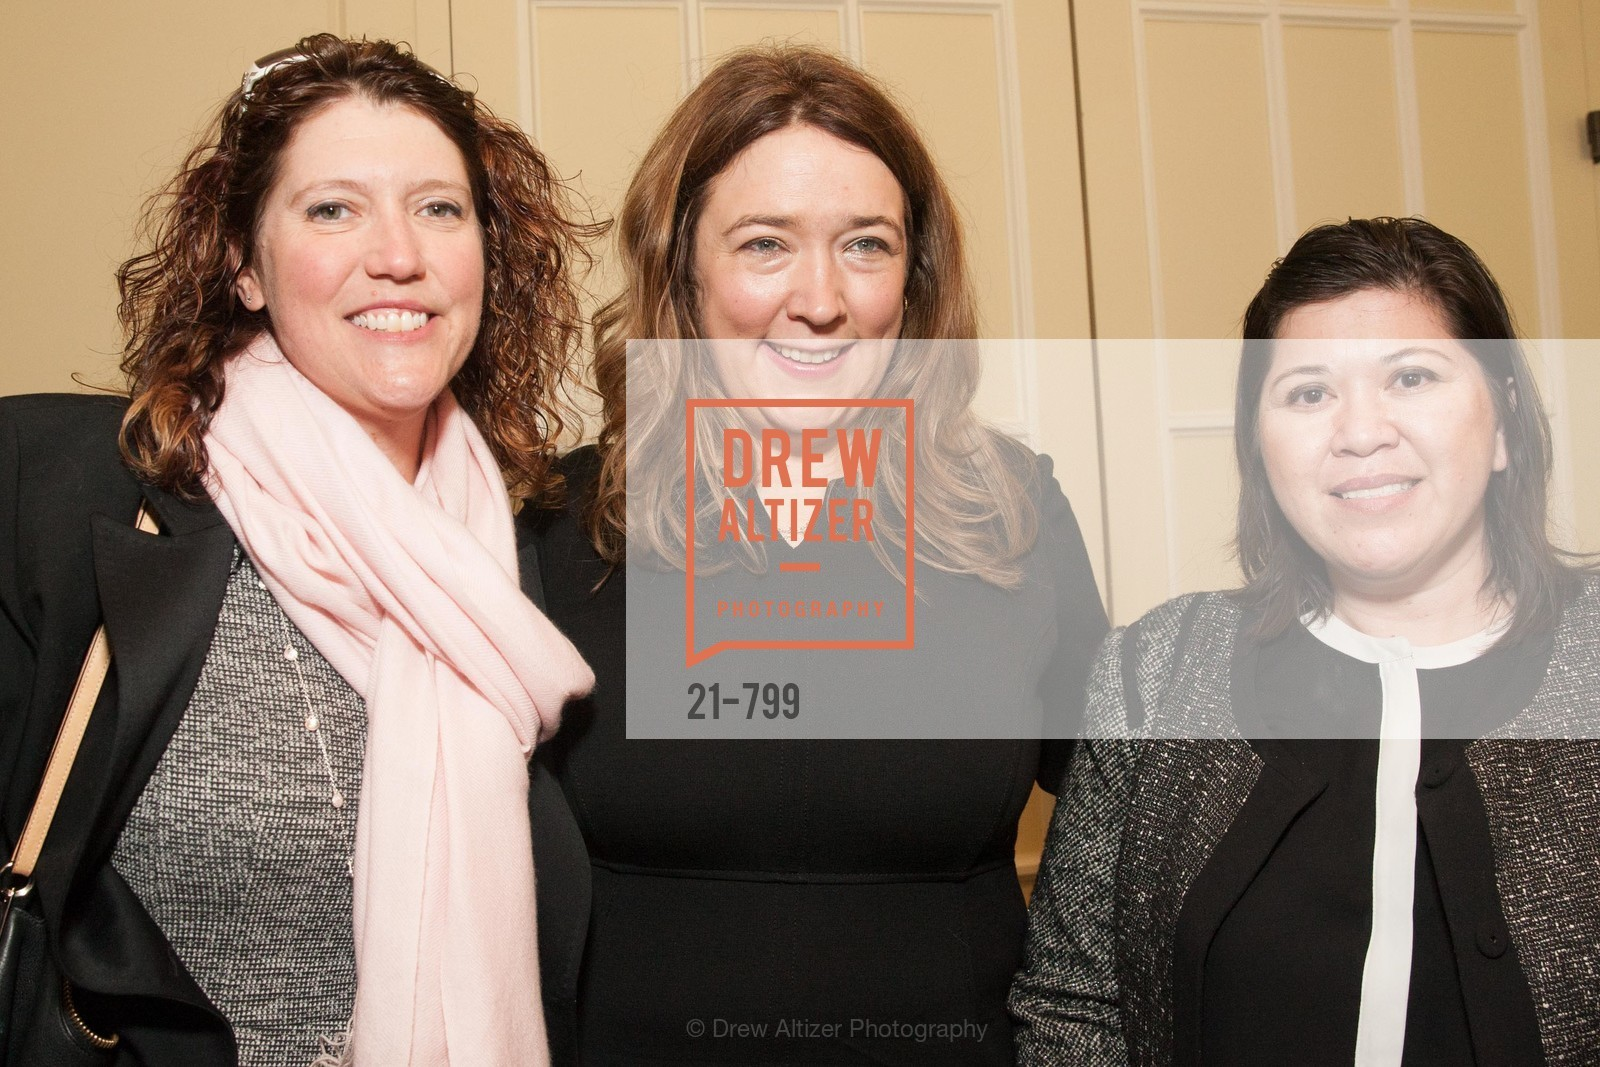 Erica Walters, Jessica Grennan, Charmaine Manansala, COMPASSION & CHOICES - Empowerment Luncheon, US, April 24th, 2015,Drew Altizer, Drew Altizer Photography, full-service agency, private events, San Francisco photographer, photographer california